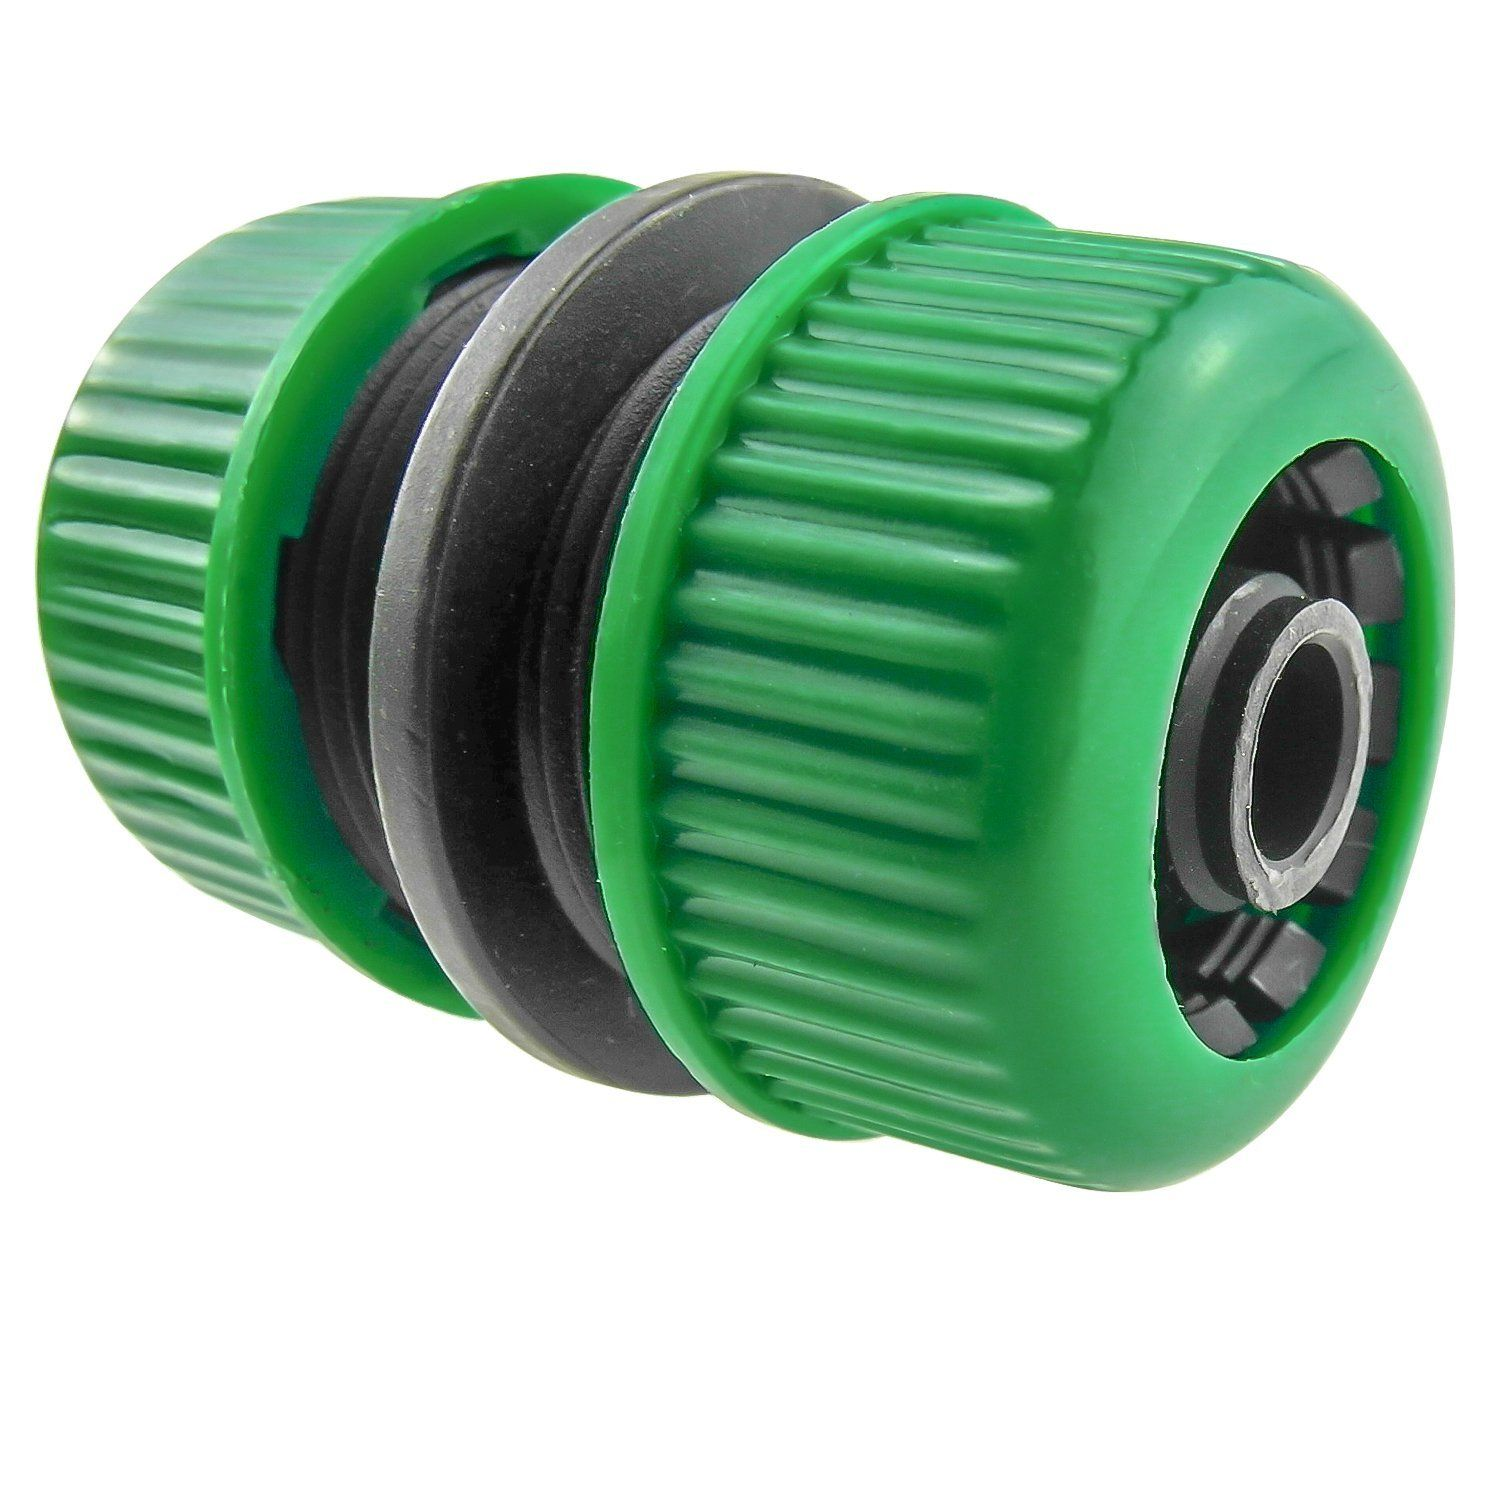 1 2 To 1 2 Garden Water Hose Extension Joint Repair Joint Joiner Connector Adapter Coupler S Izobrazheniyami